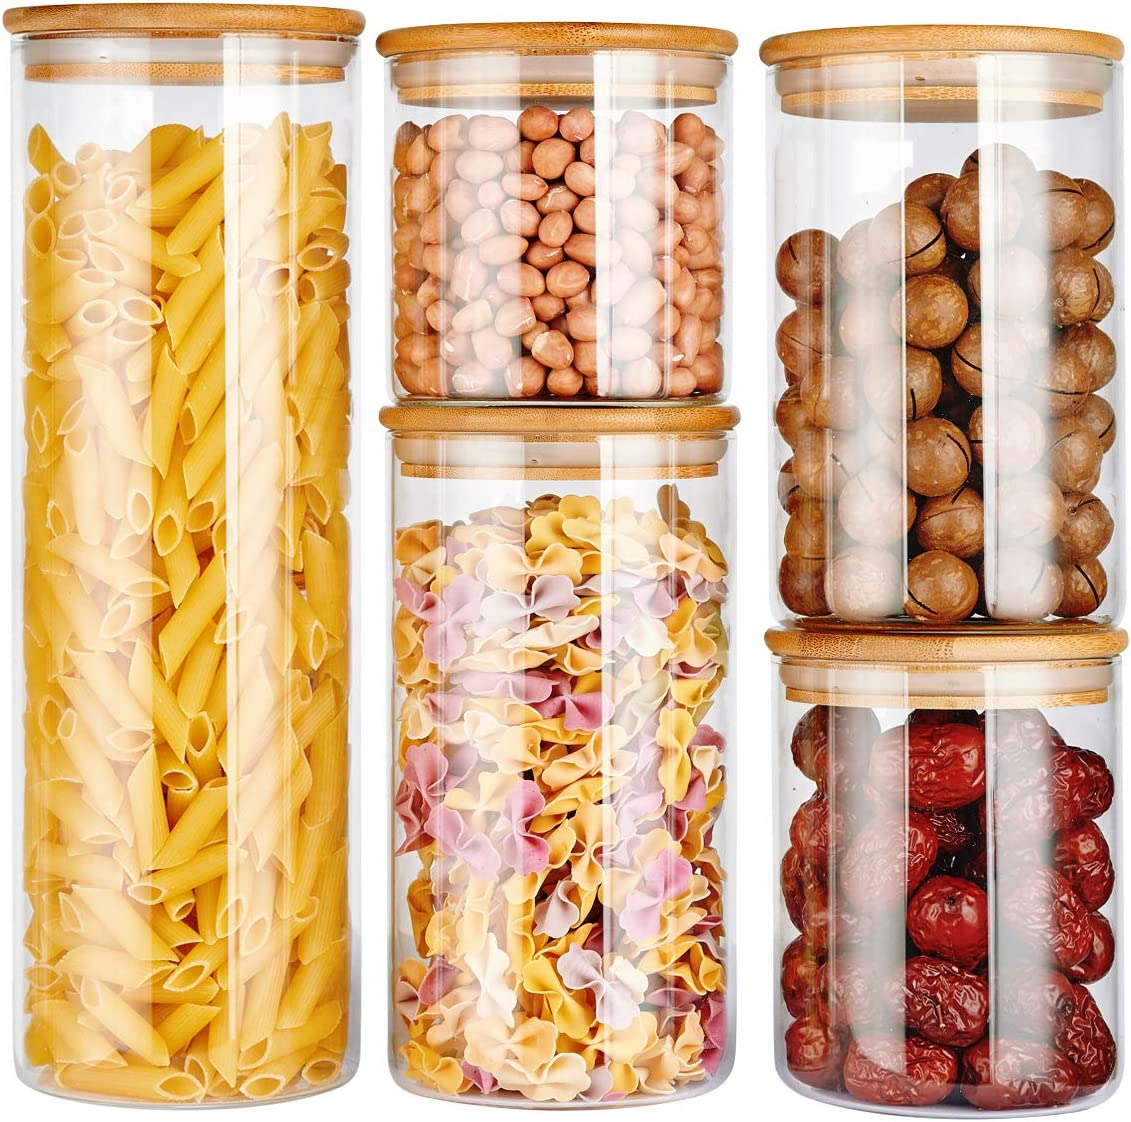 copdrel Stackable Kitchen Canisters Set, Airtight Glass Canister Set of 5 - Clear Glass Bulk Food Storage Canister for Coffee, Flour, Sugar, Candy, Cookie, Spice